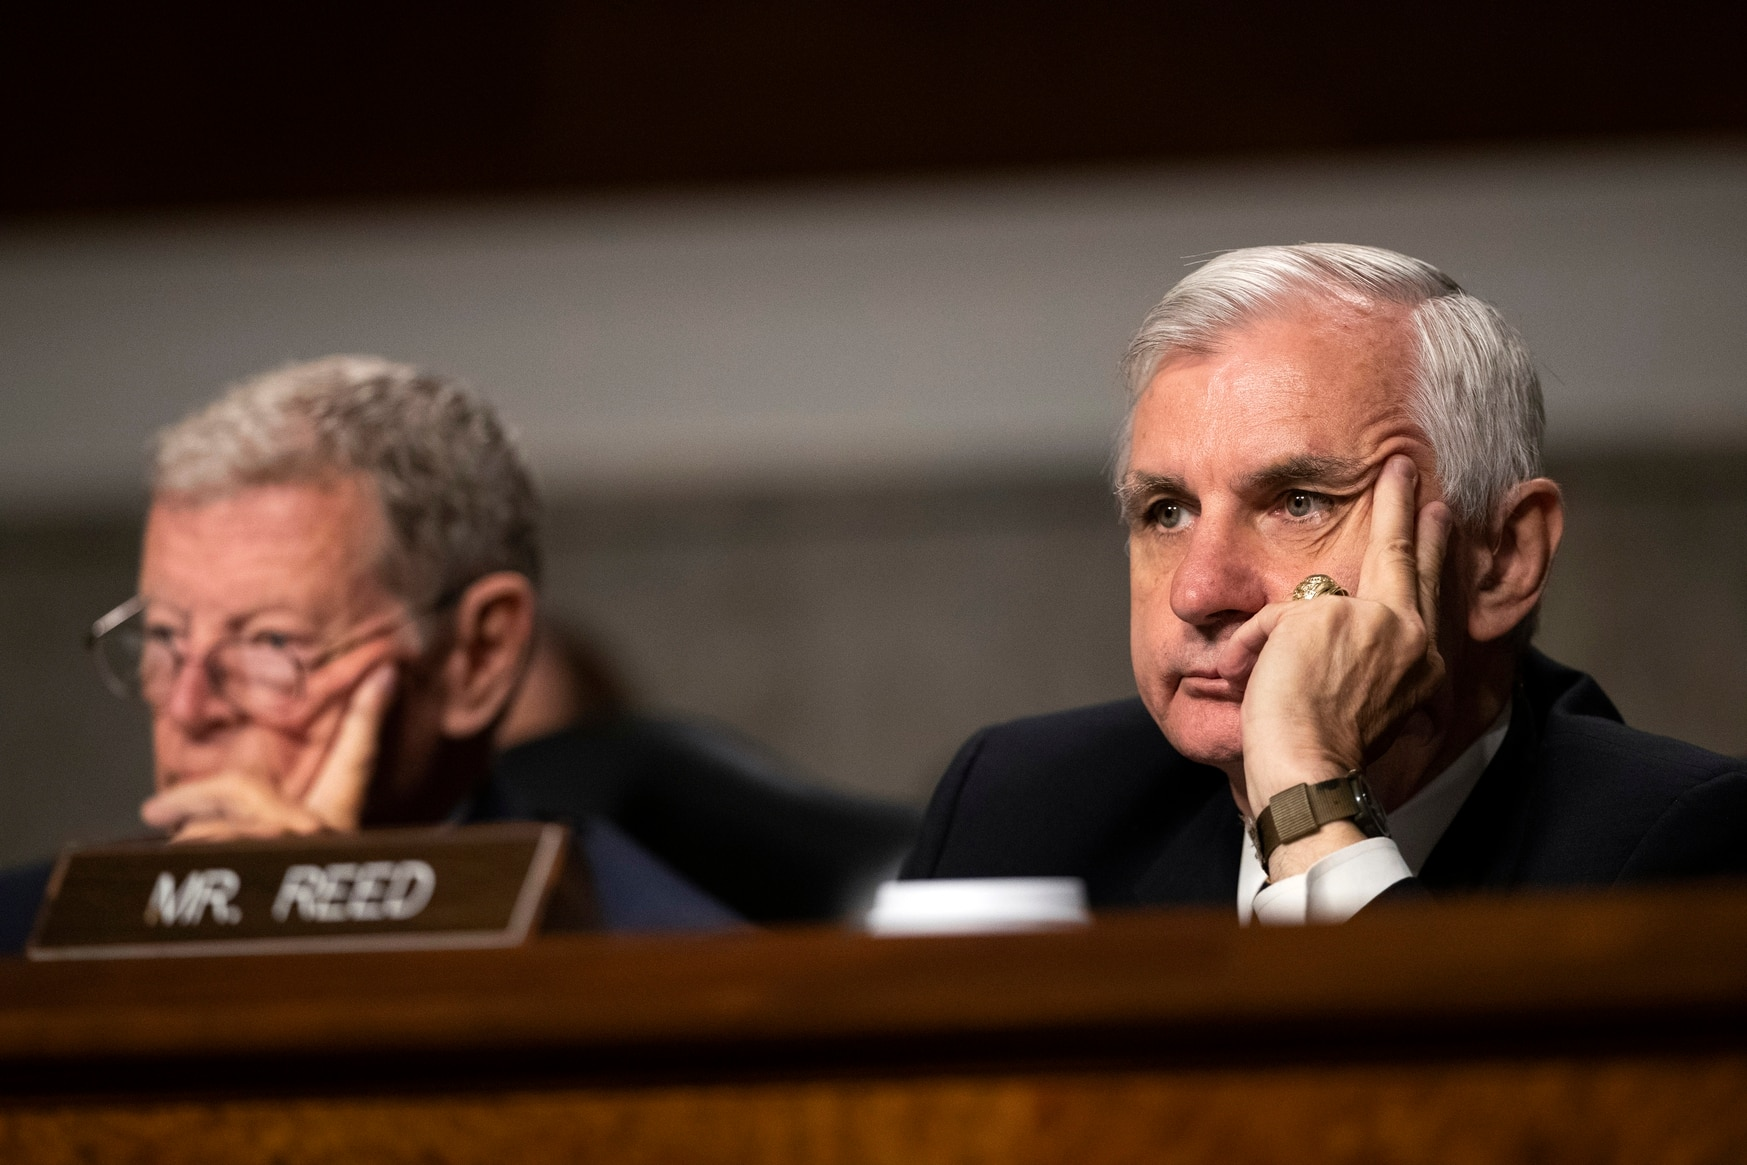 Senate Armed Services Committee Chairman Sen. James Inhofe, R-Okla. (left), and ranking member Sen. Jack Reed, D-R.I., right, listen during a hearing on July 16, 2019. (Manuel Balce Ceneta/AP)